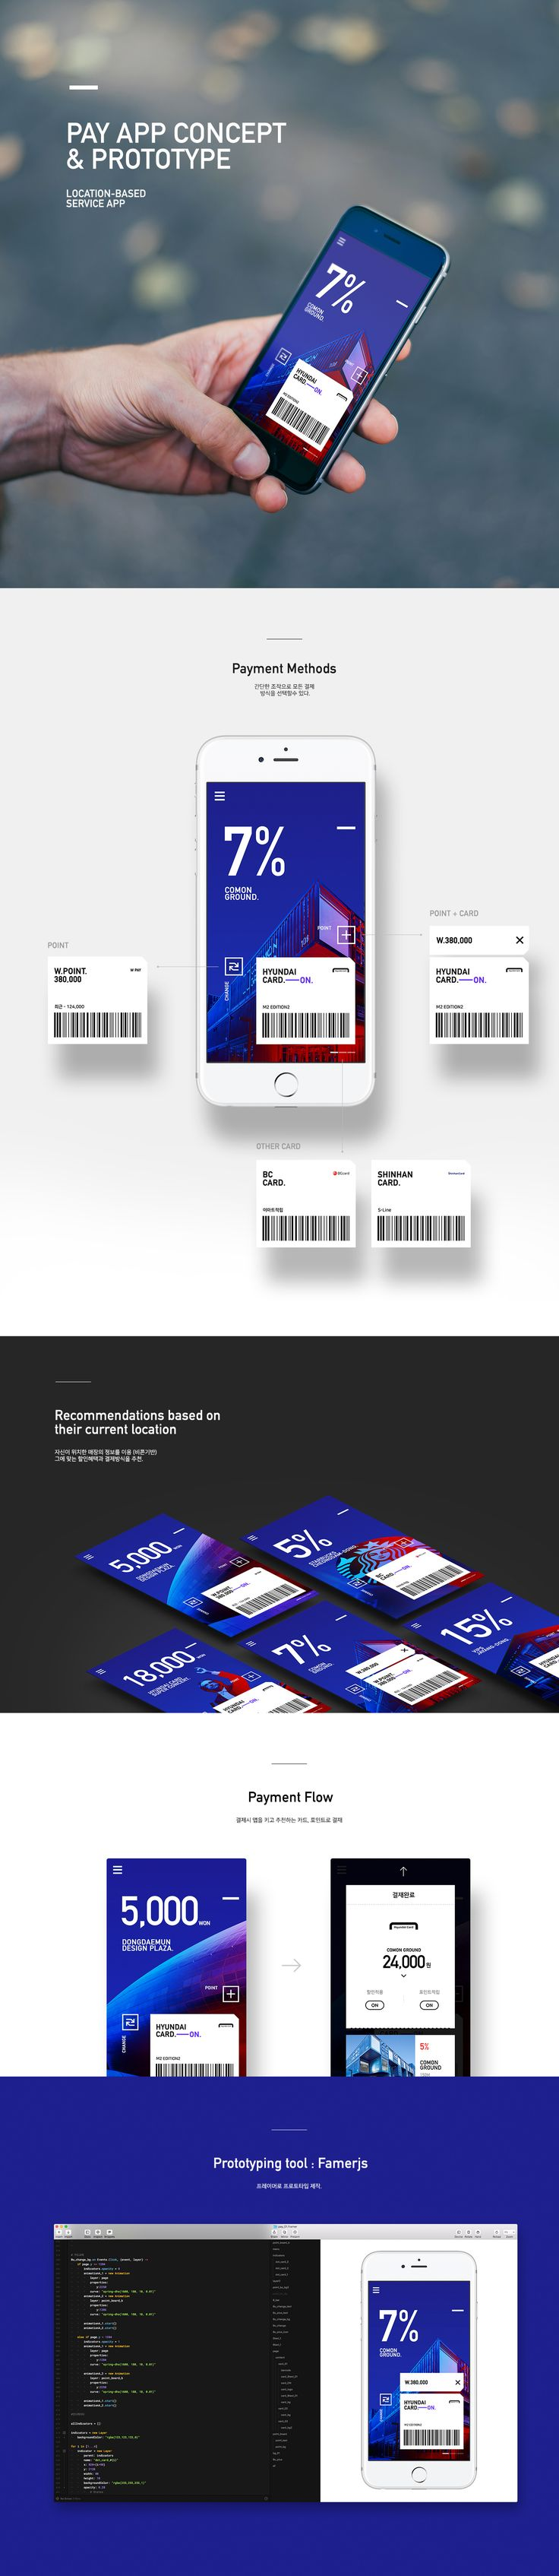 Pay App Concept & Prototype.Location-based service App